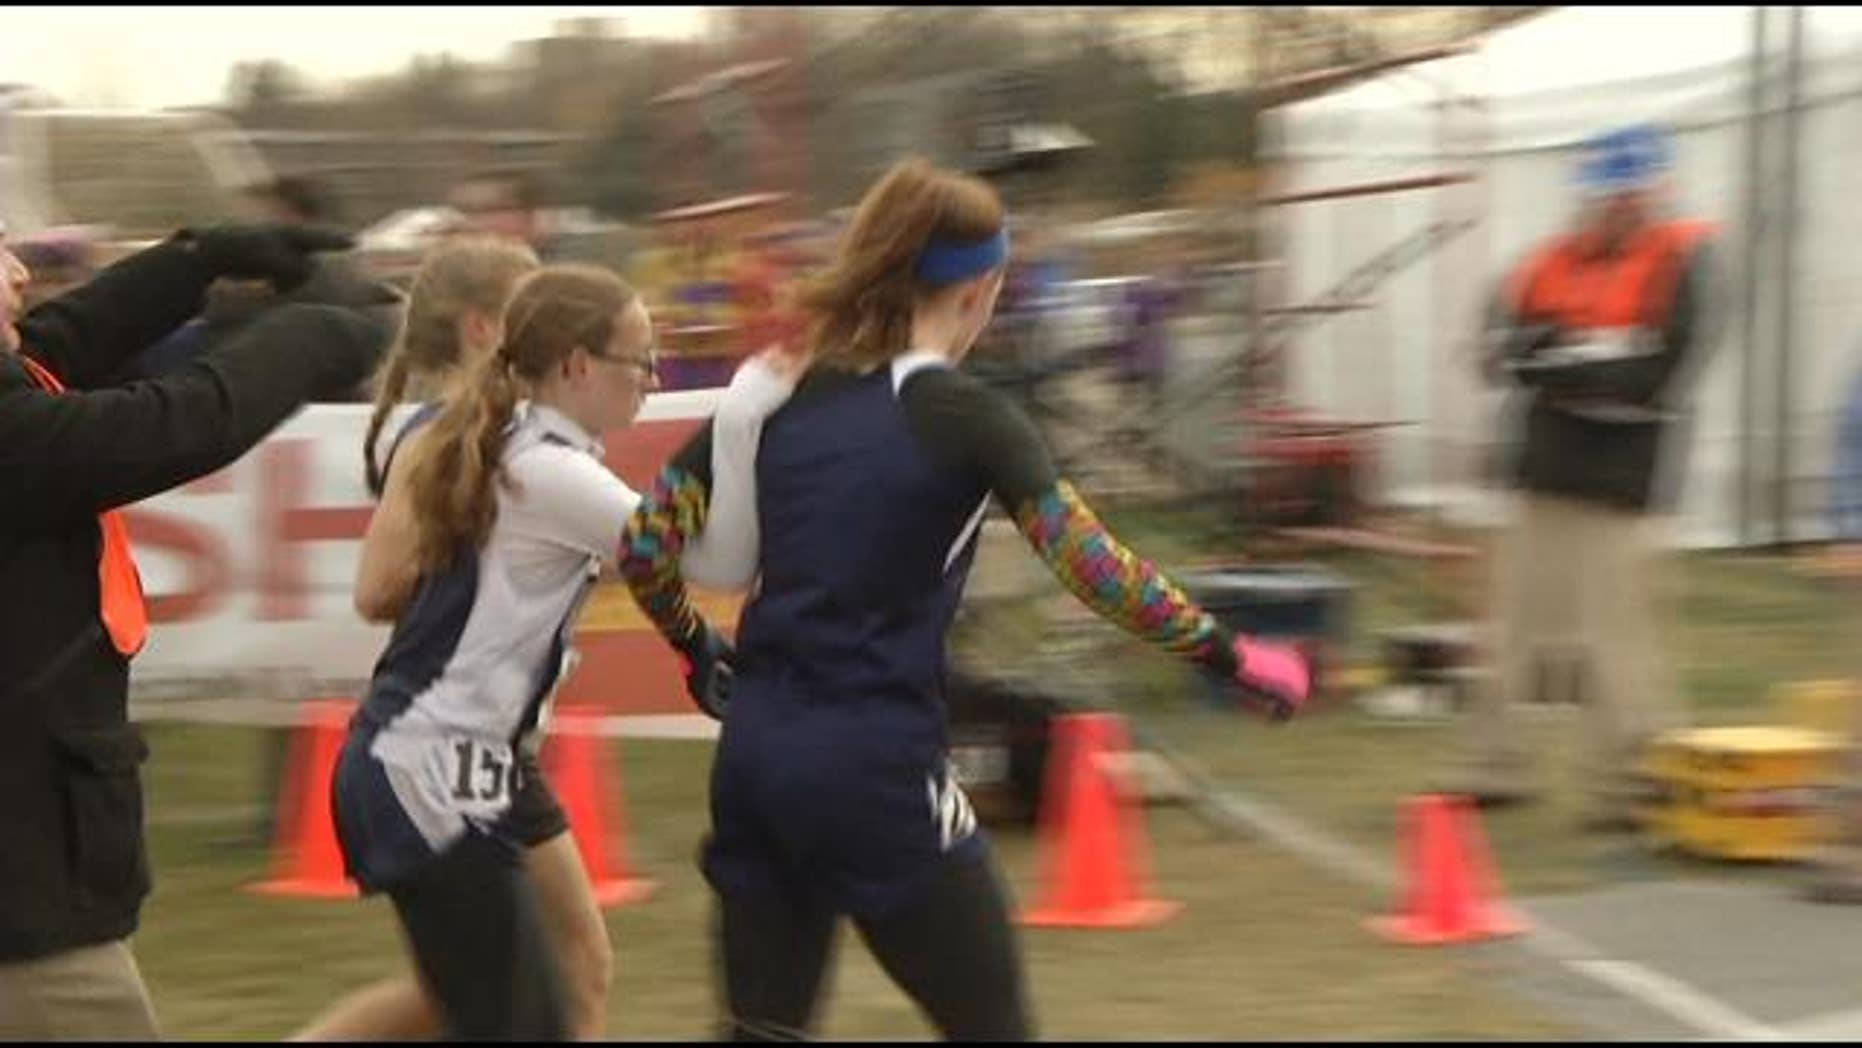 Senior Kailee Kiminski, of Esko, and junior Tierney Winter, of Janesville, forfeited the race last weekend after assisting Jackson County Central freshman Jessica Christoffer cross the finish line. (Courtesy: KEYC-TV)